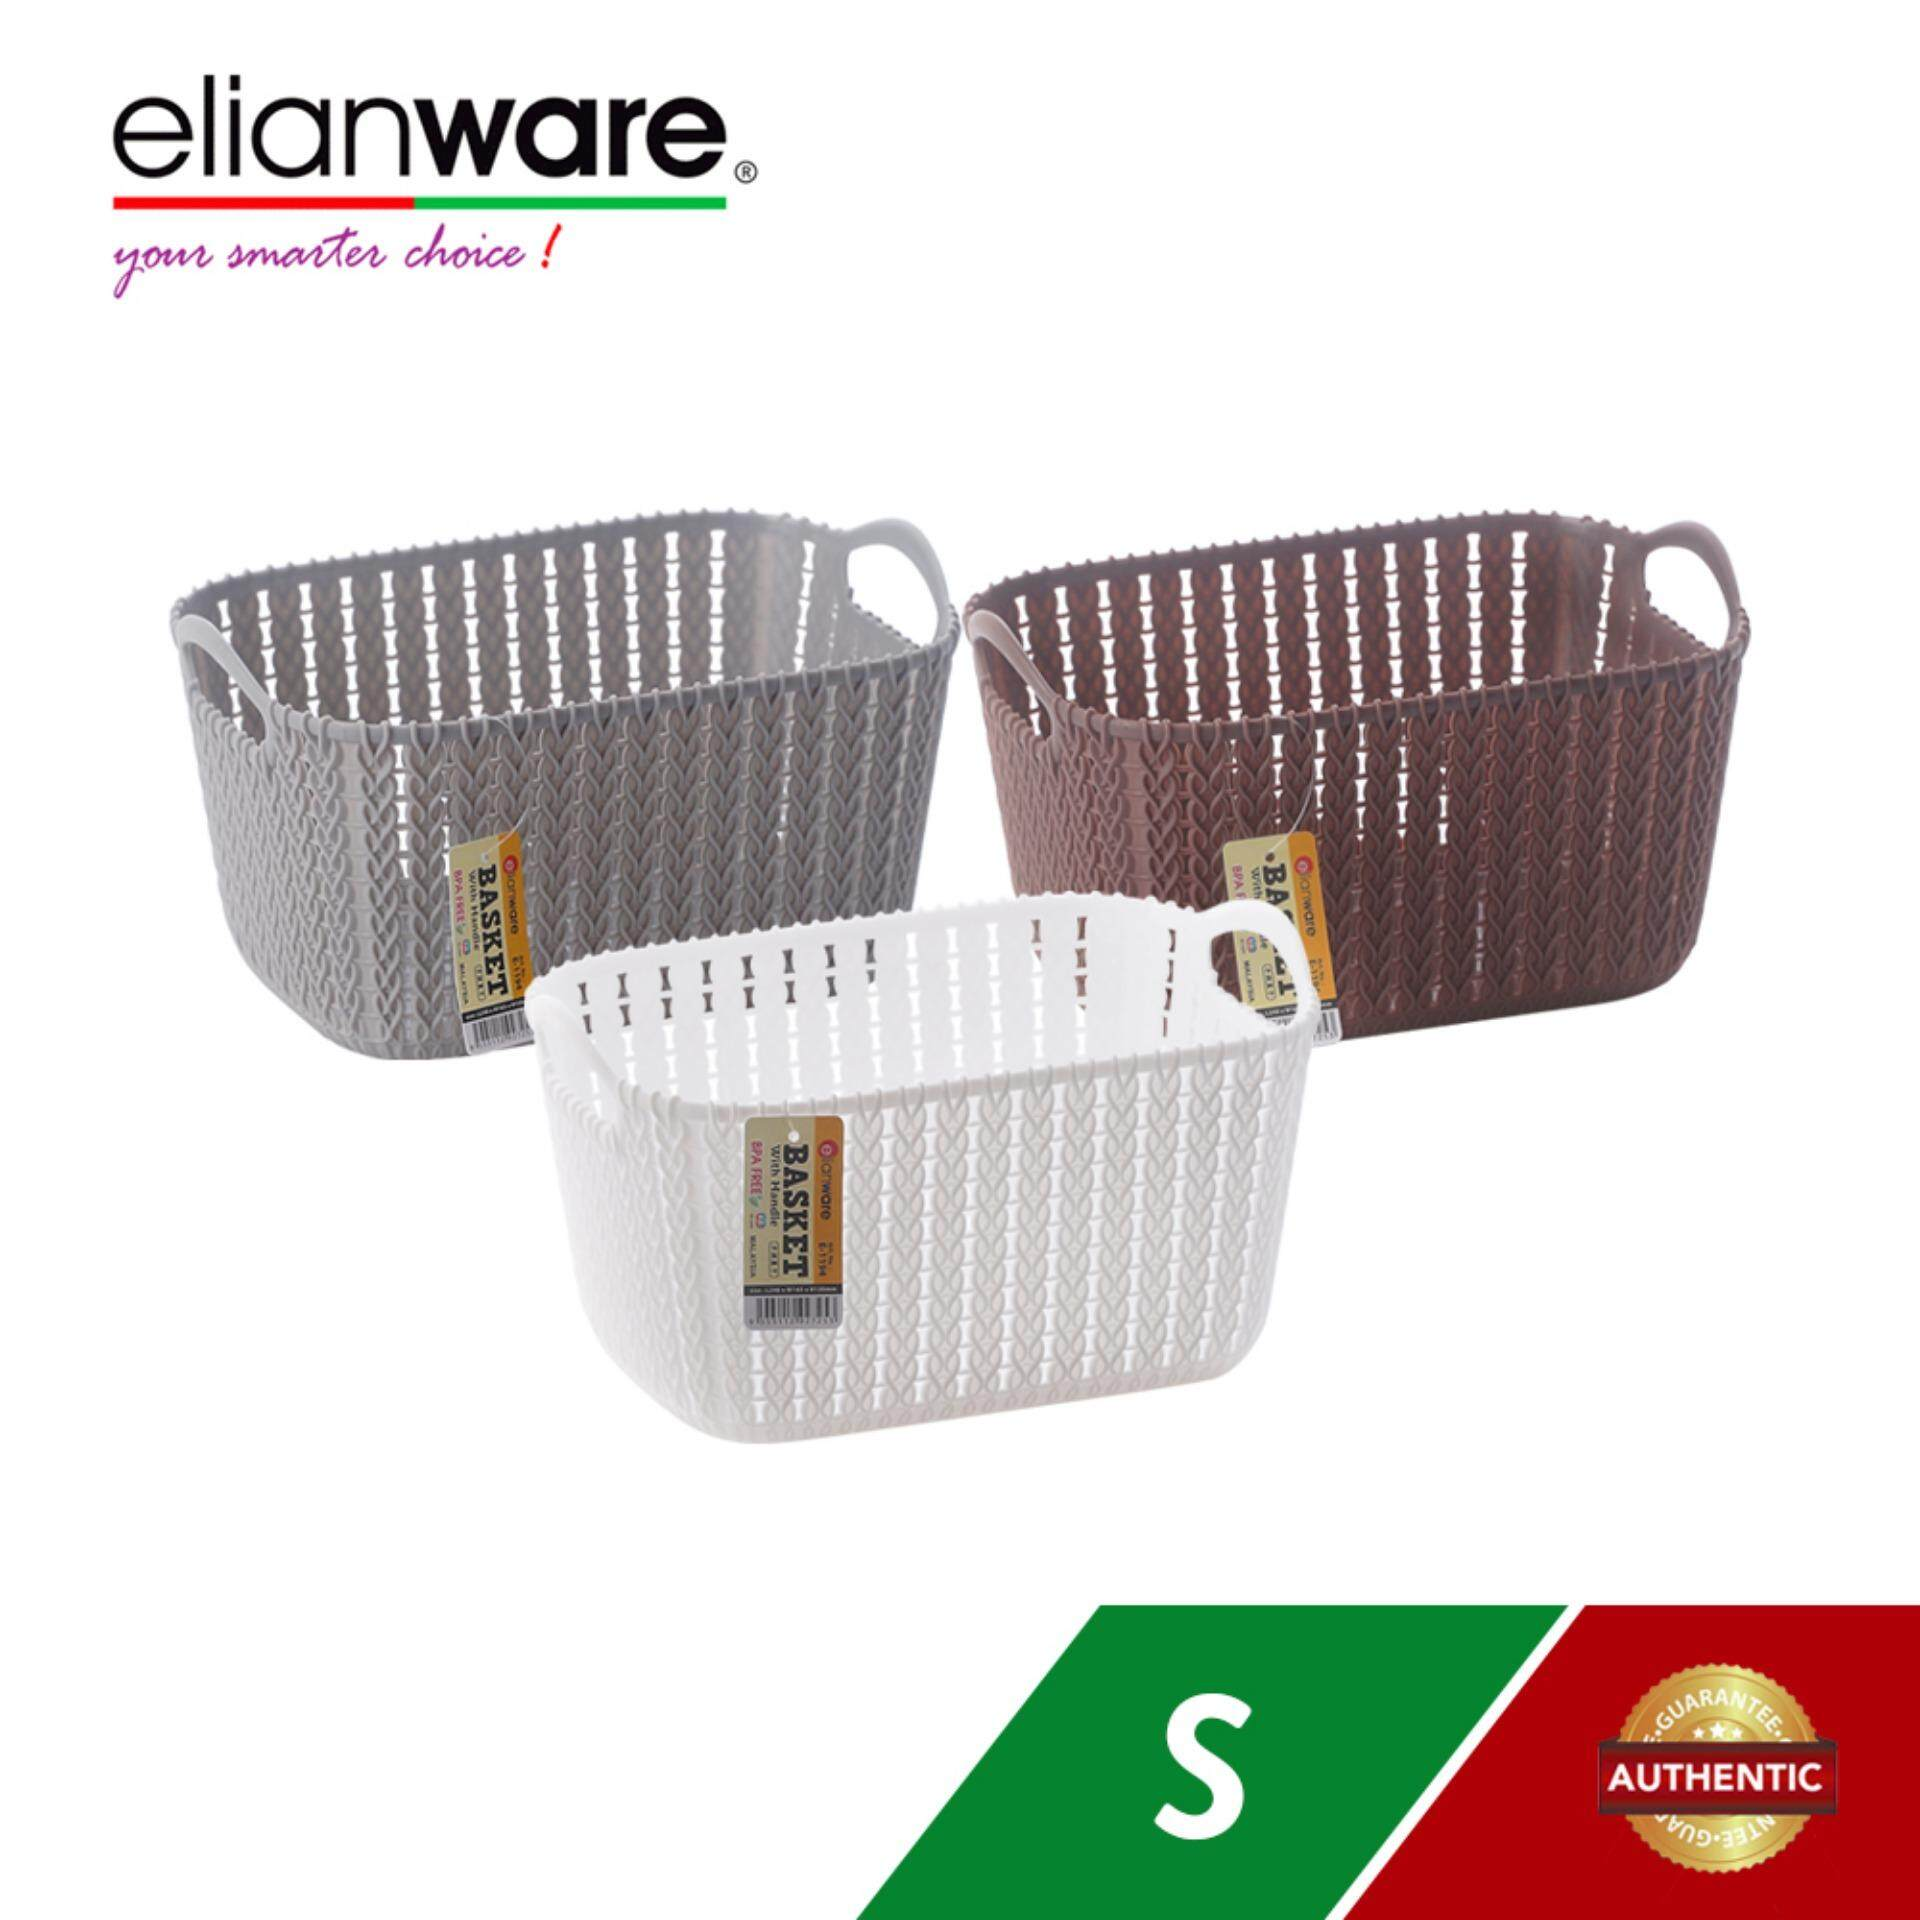 Elianware Modern Rectangular Basket with Handle